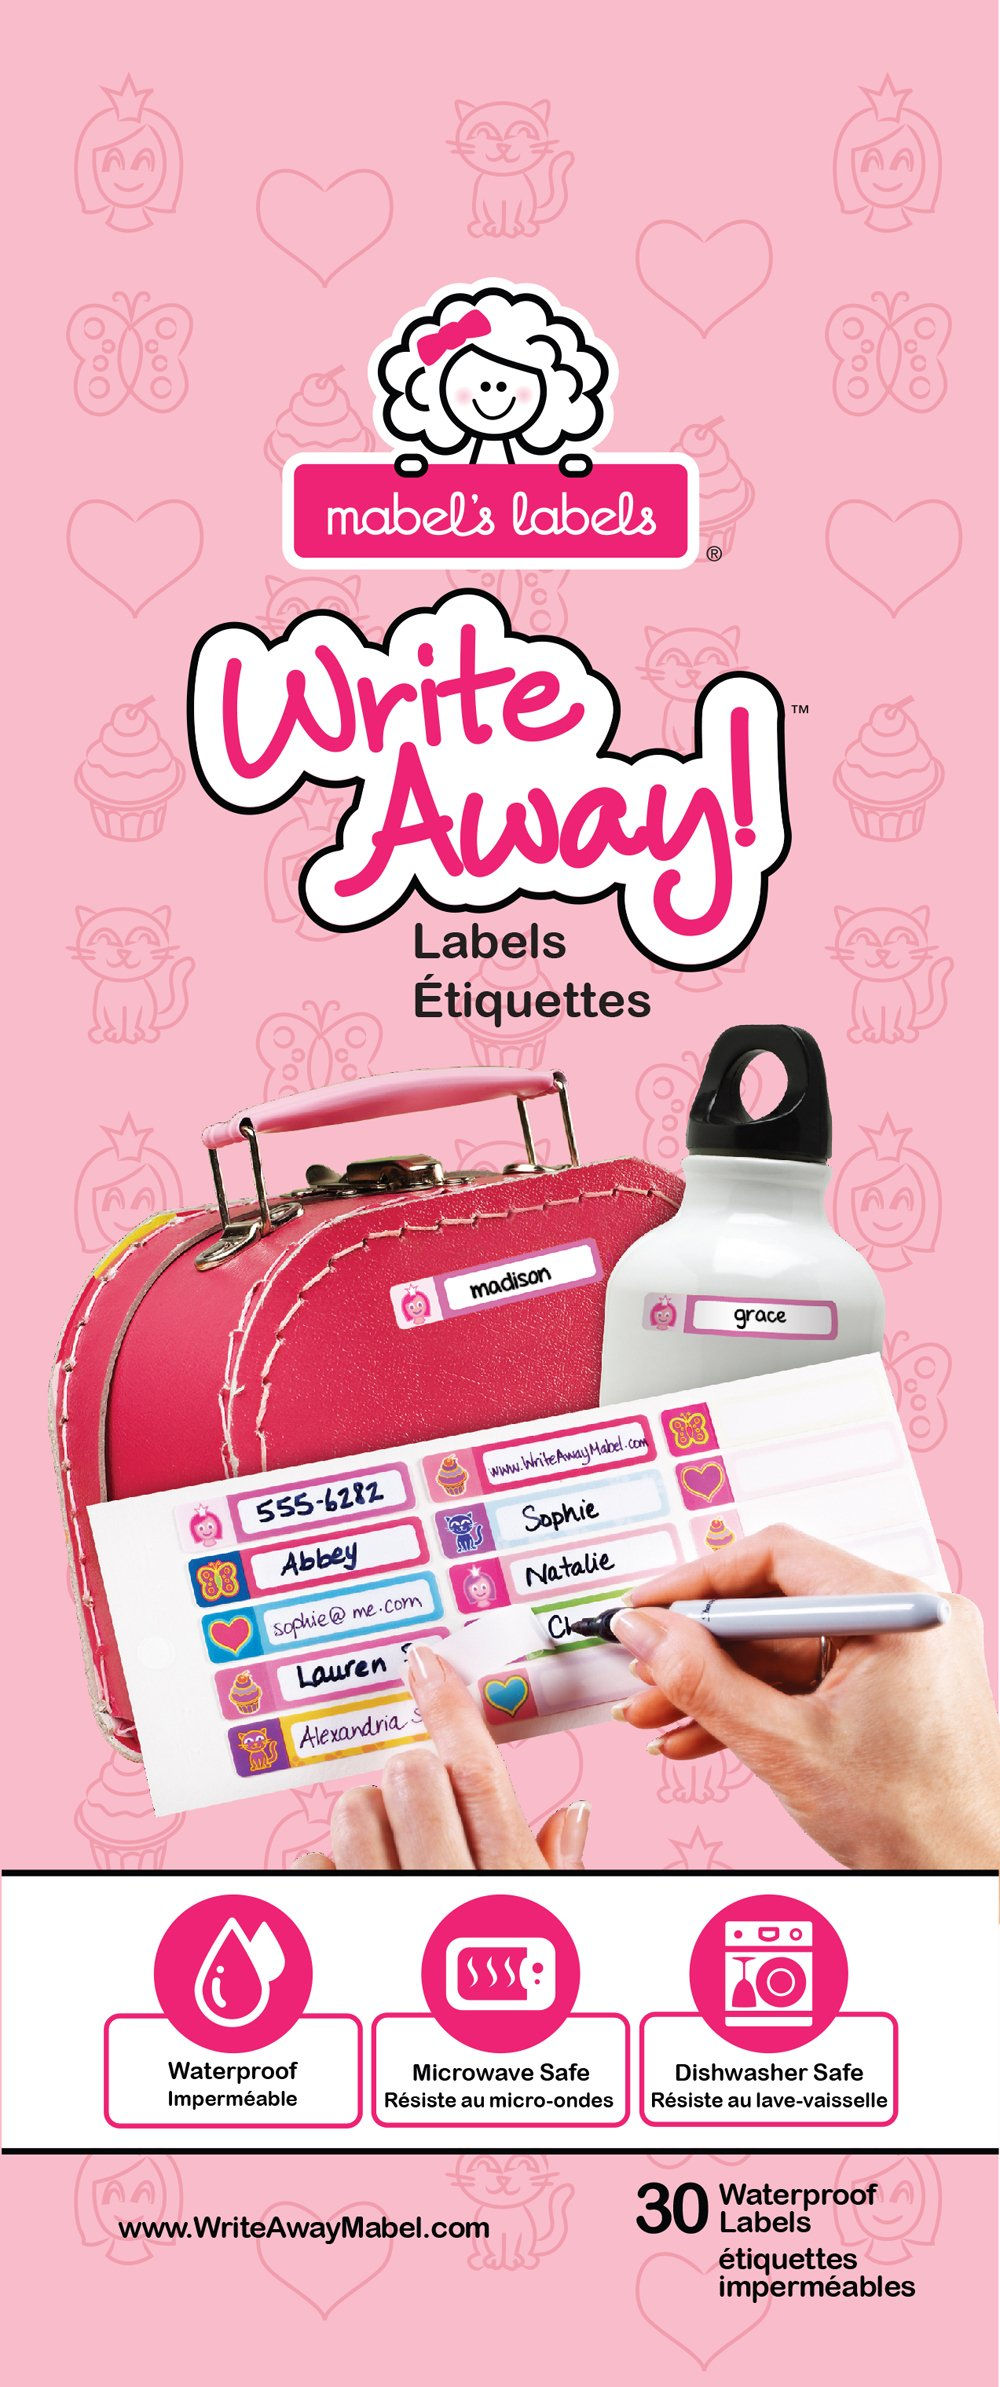 Mabel's Labels - Self-laminating, Write On Name Labels for kids (Girls - cute Icons), Waterproof, Dishwasher and Microwave Safe, 30 Labels ready for School, Daycare & Camp